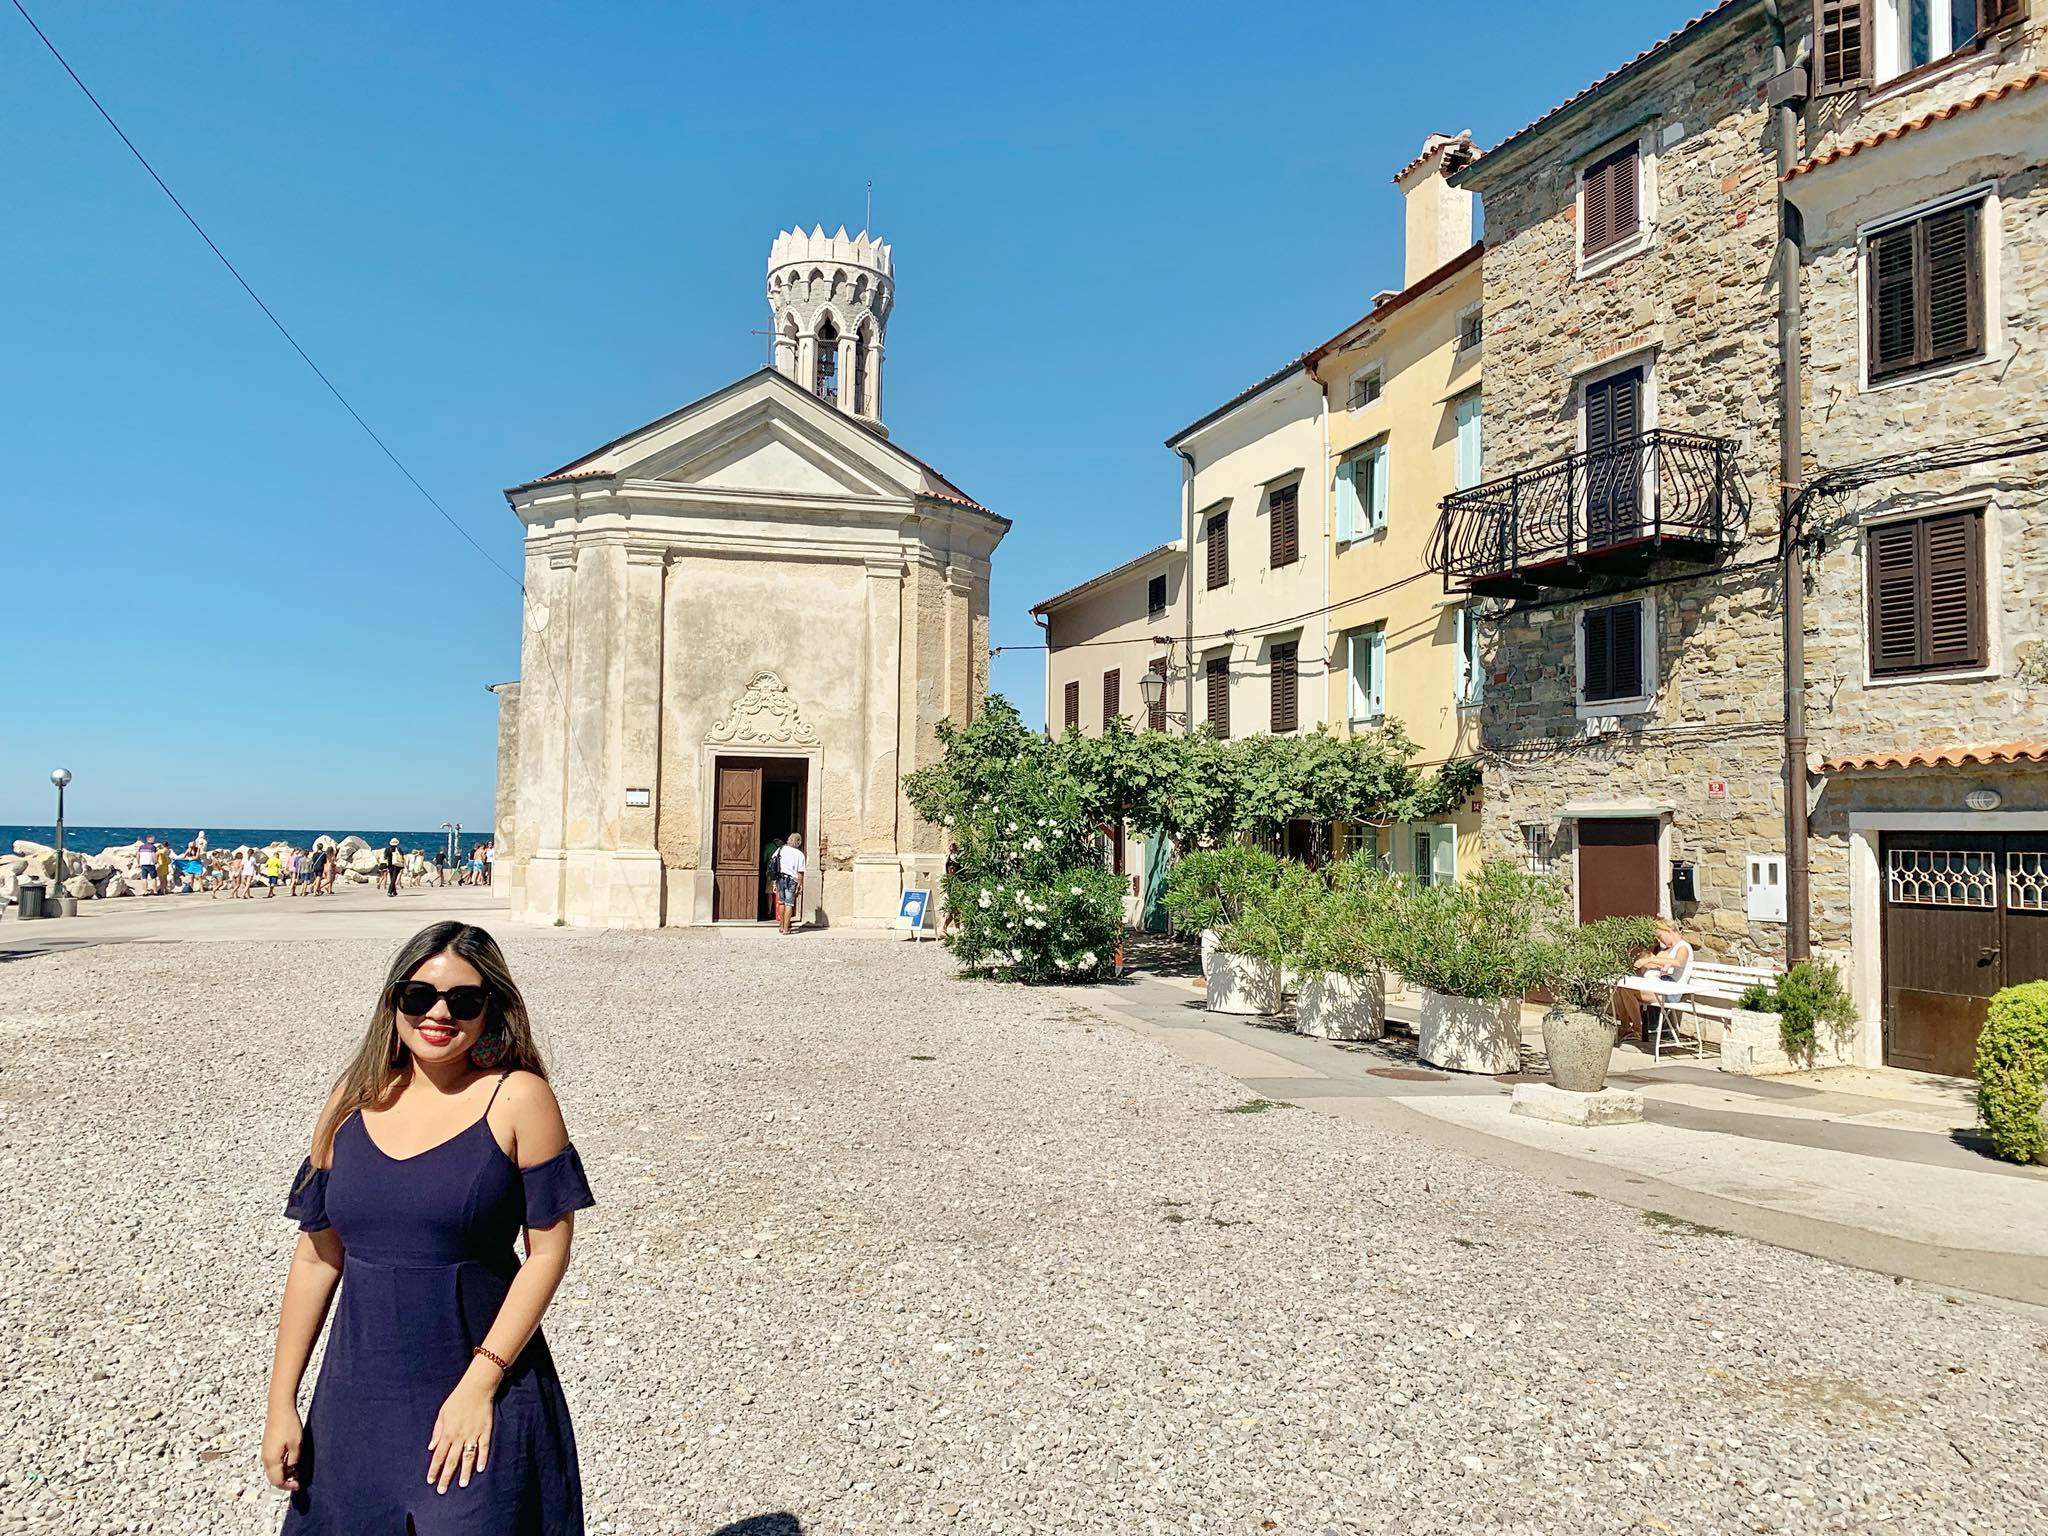 Life On The Road Day 132 Now we're in this beautiful town beside the Adriatic sea3.jpg